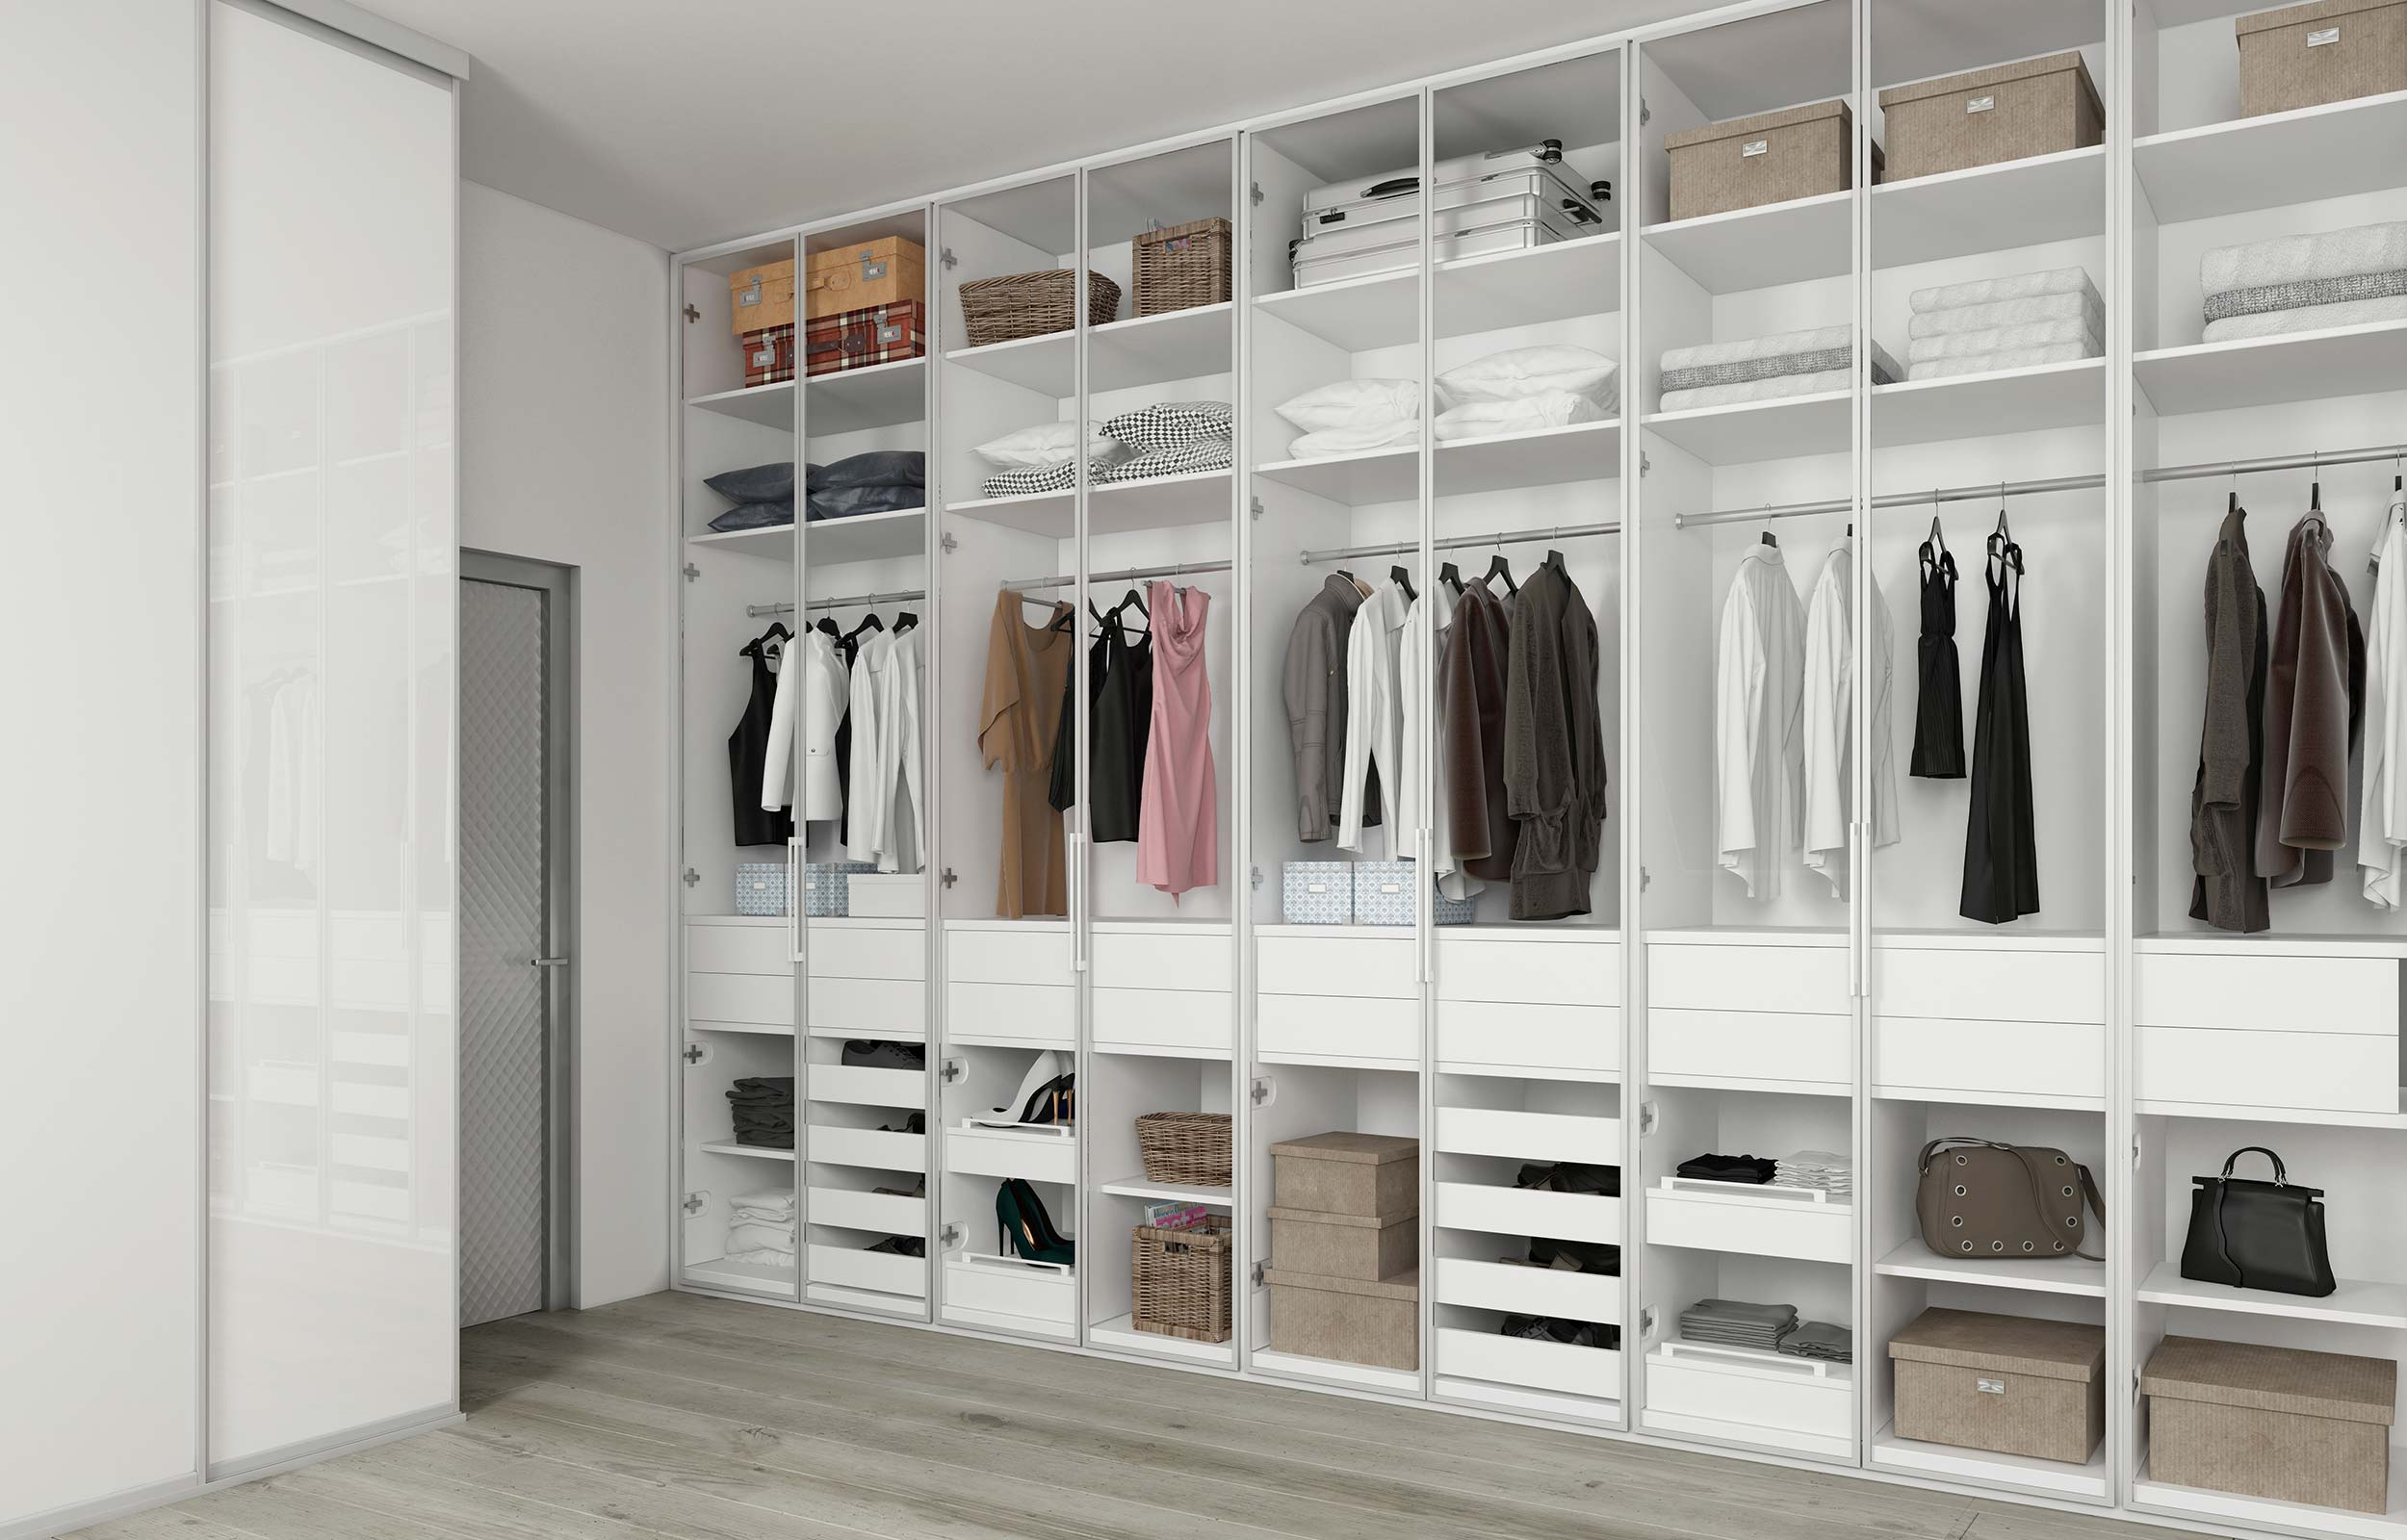 Ideas On Hanging Pictures In Hallway Walk In Wardrobe Ki